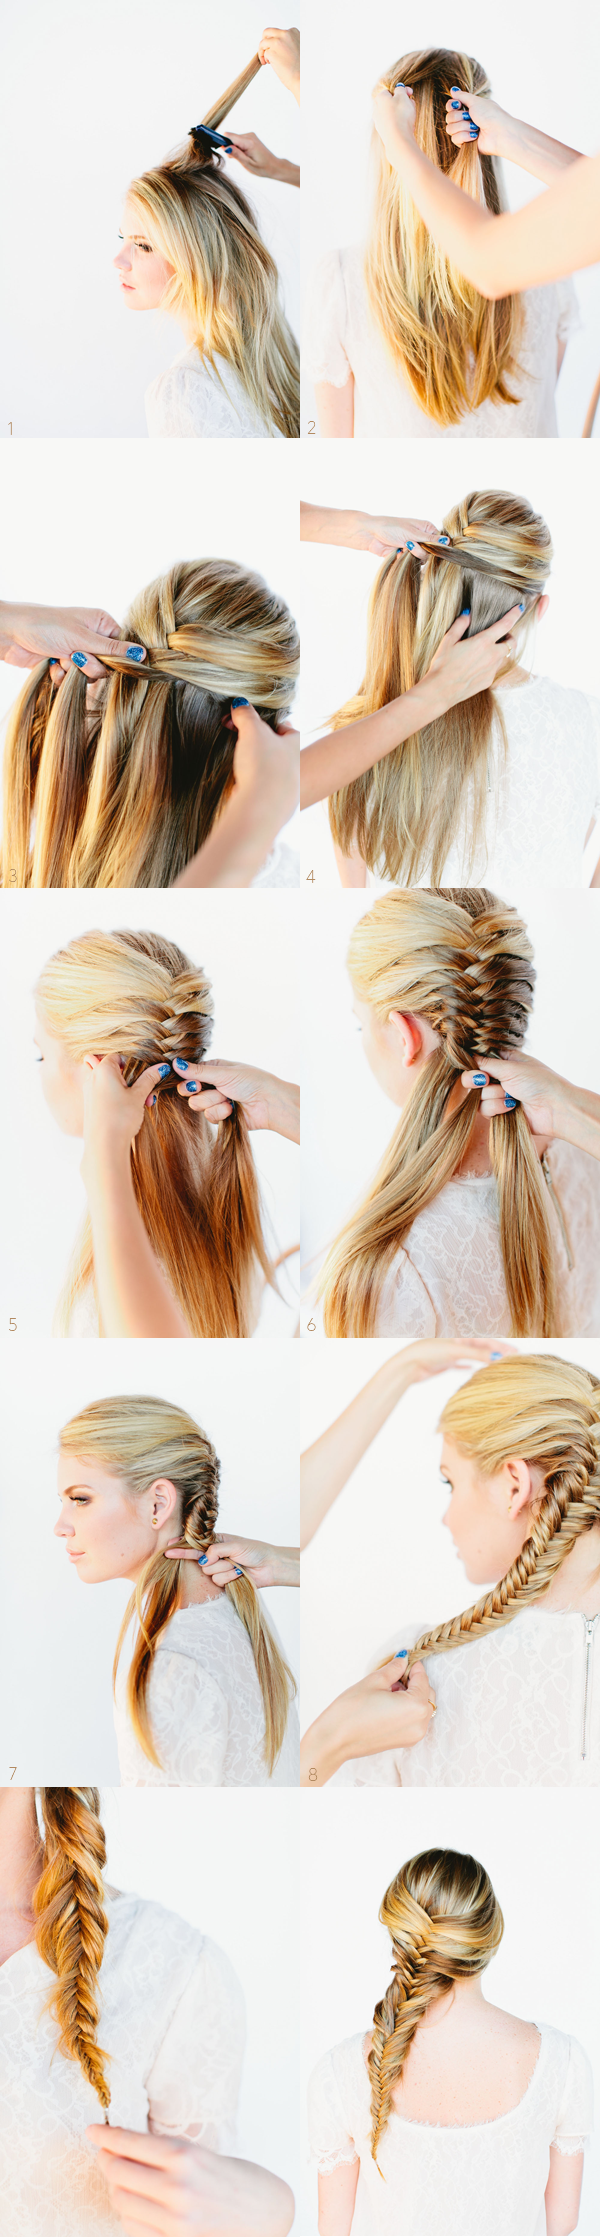 DIY Fishtail Braid - Hair Tutorial